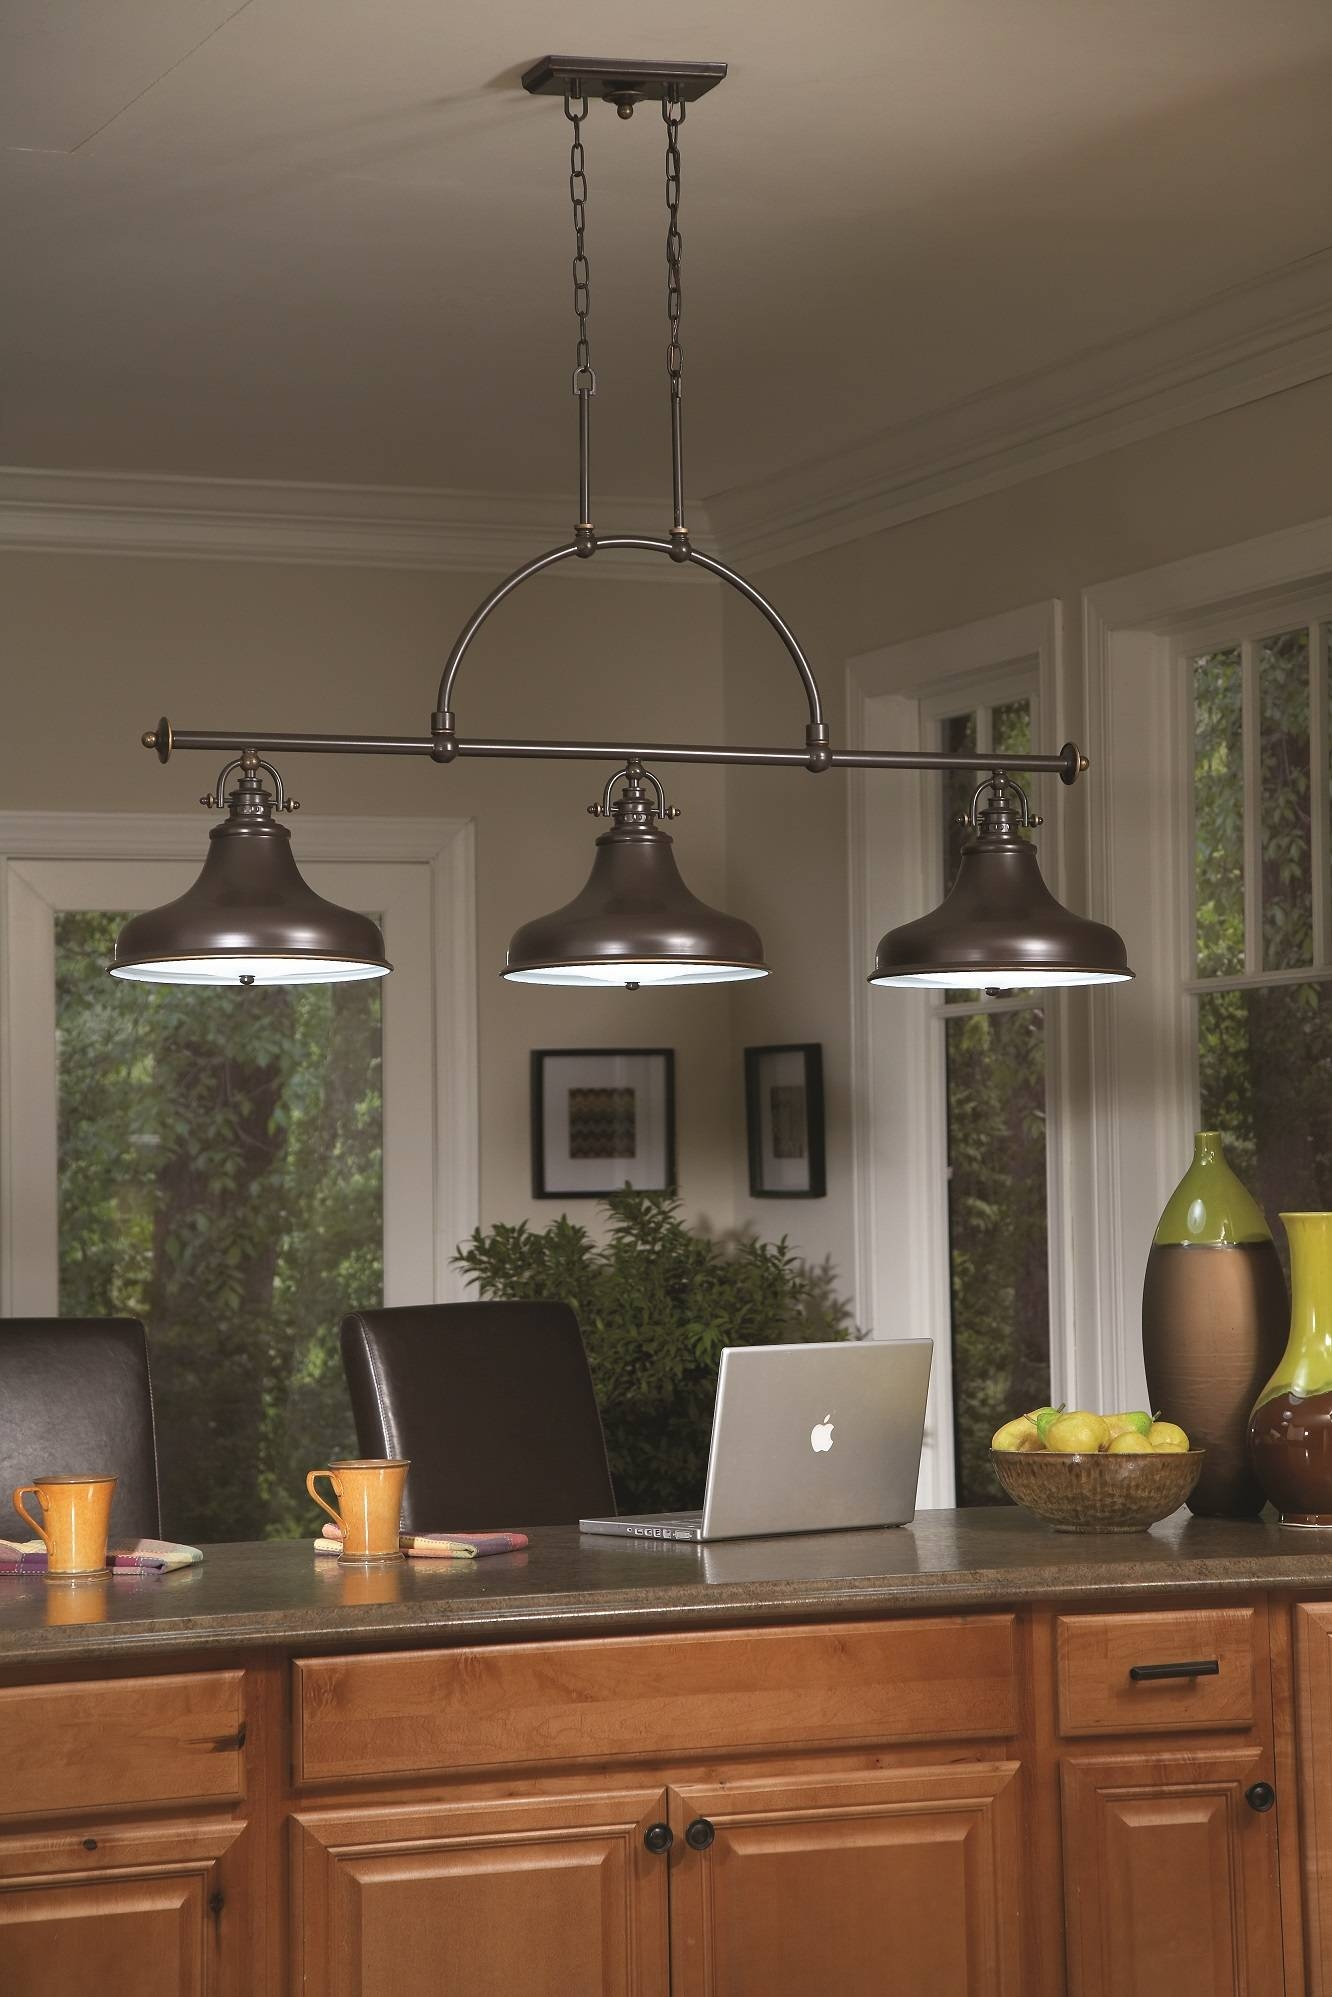 Emery 3 Light Island Ceiling Pendant | Kitchen Lighting Throughout 3 Light Pendants For Island Kitchen Lighting (View 11 of 15)